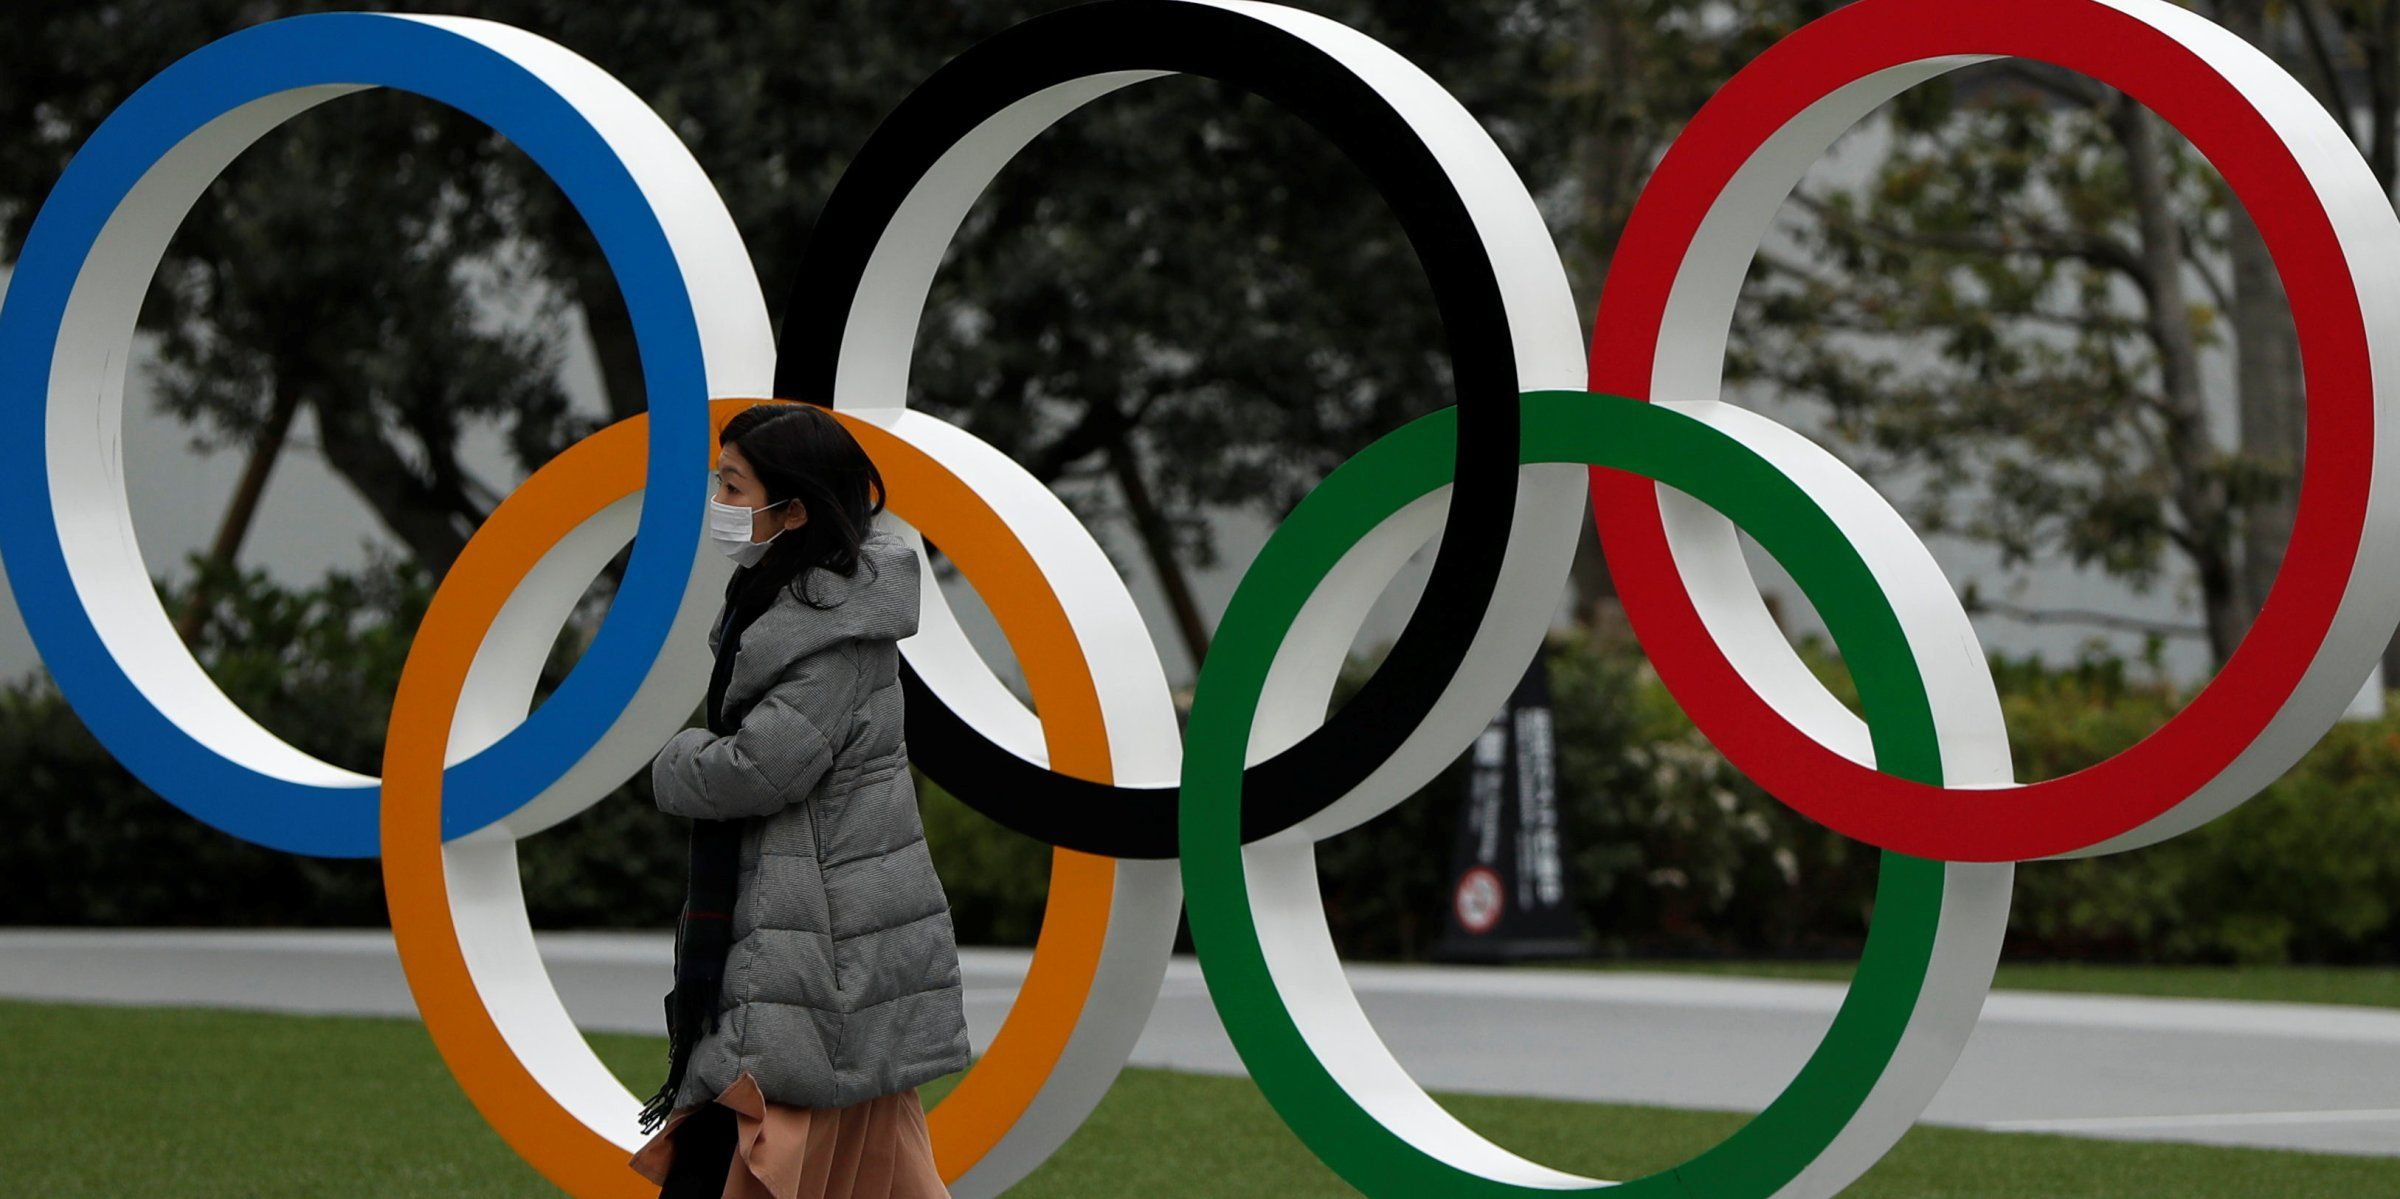 Talks underway for Olympics opening in July 2021 https